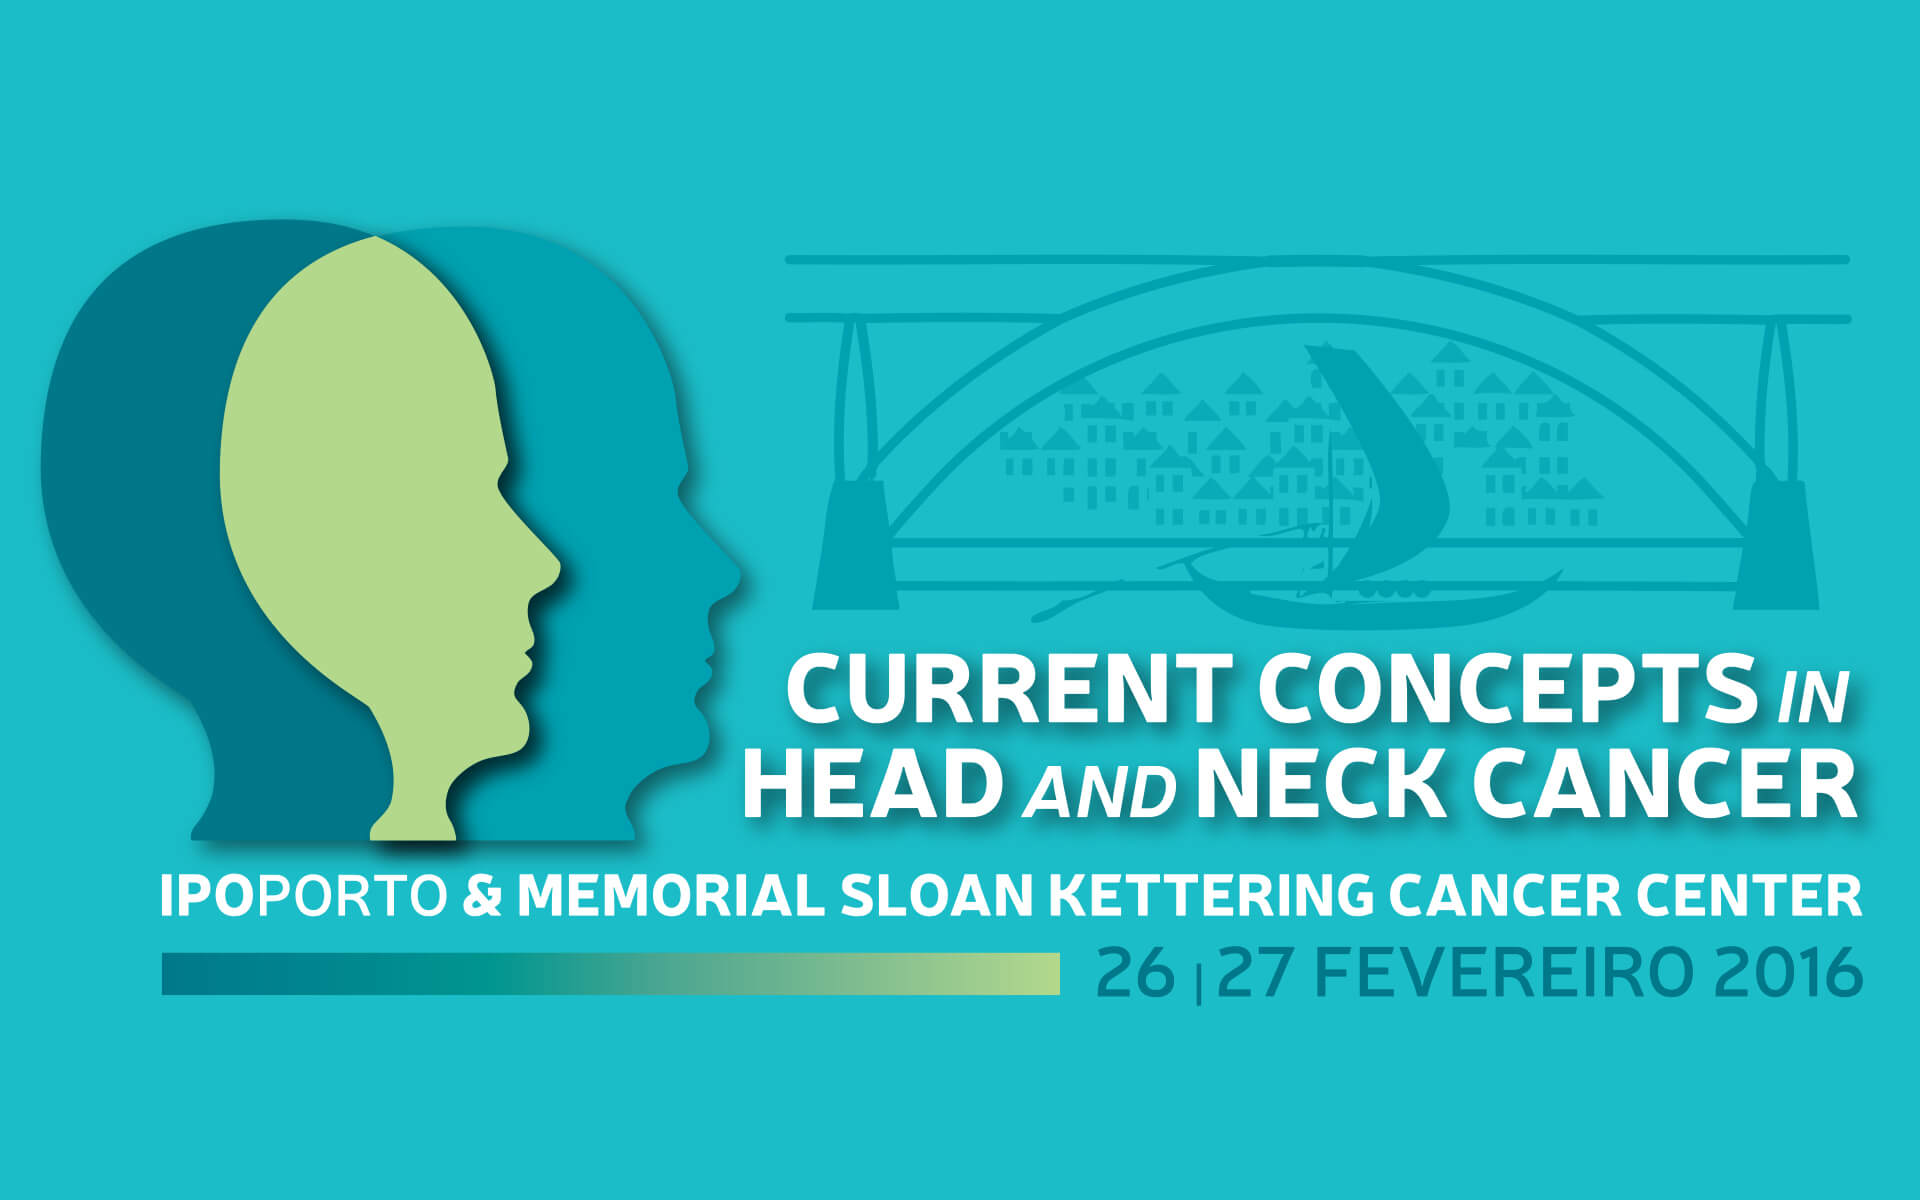 Current Concepts in Head and Neck Cancer